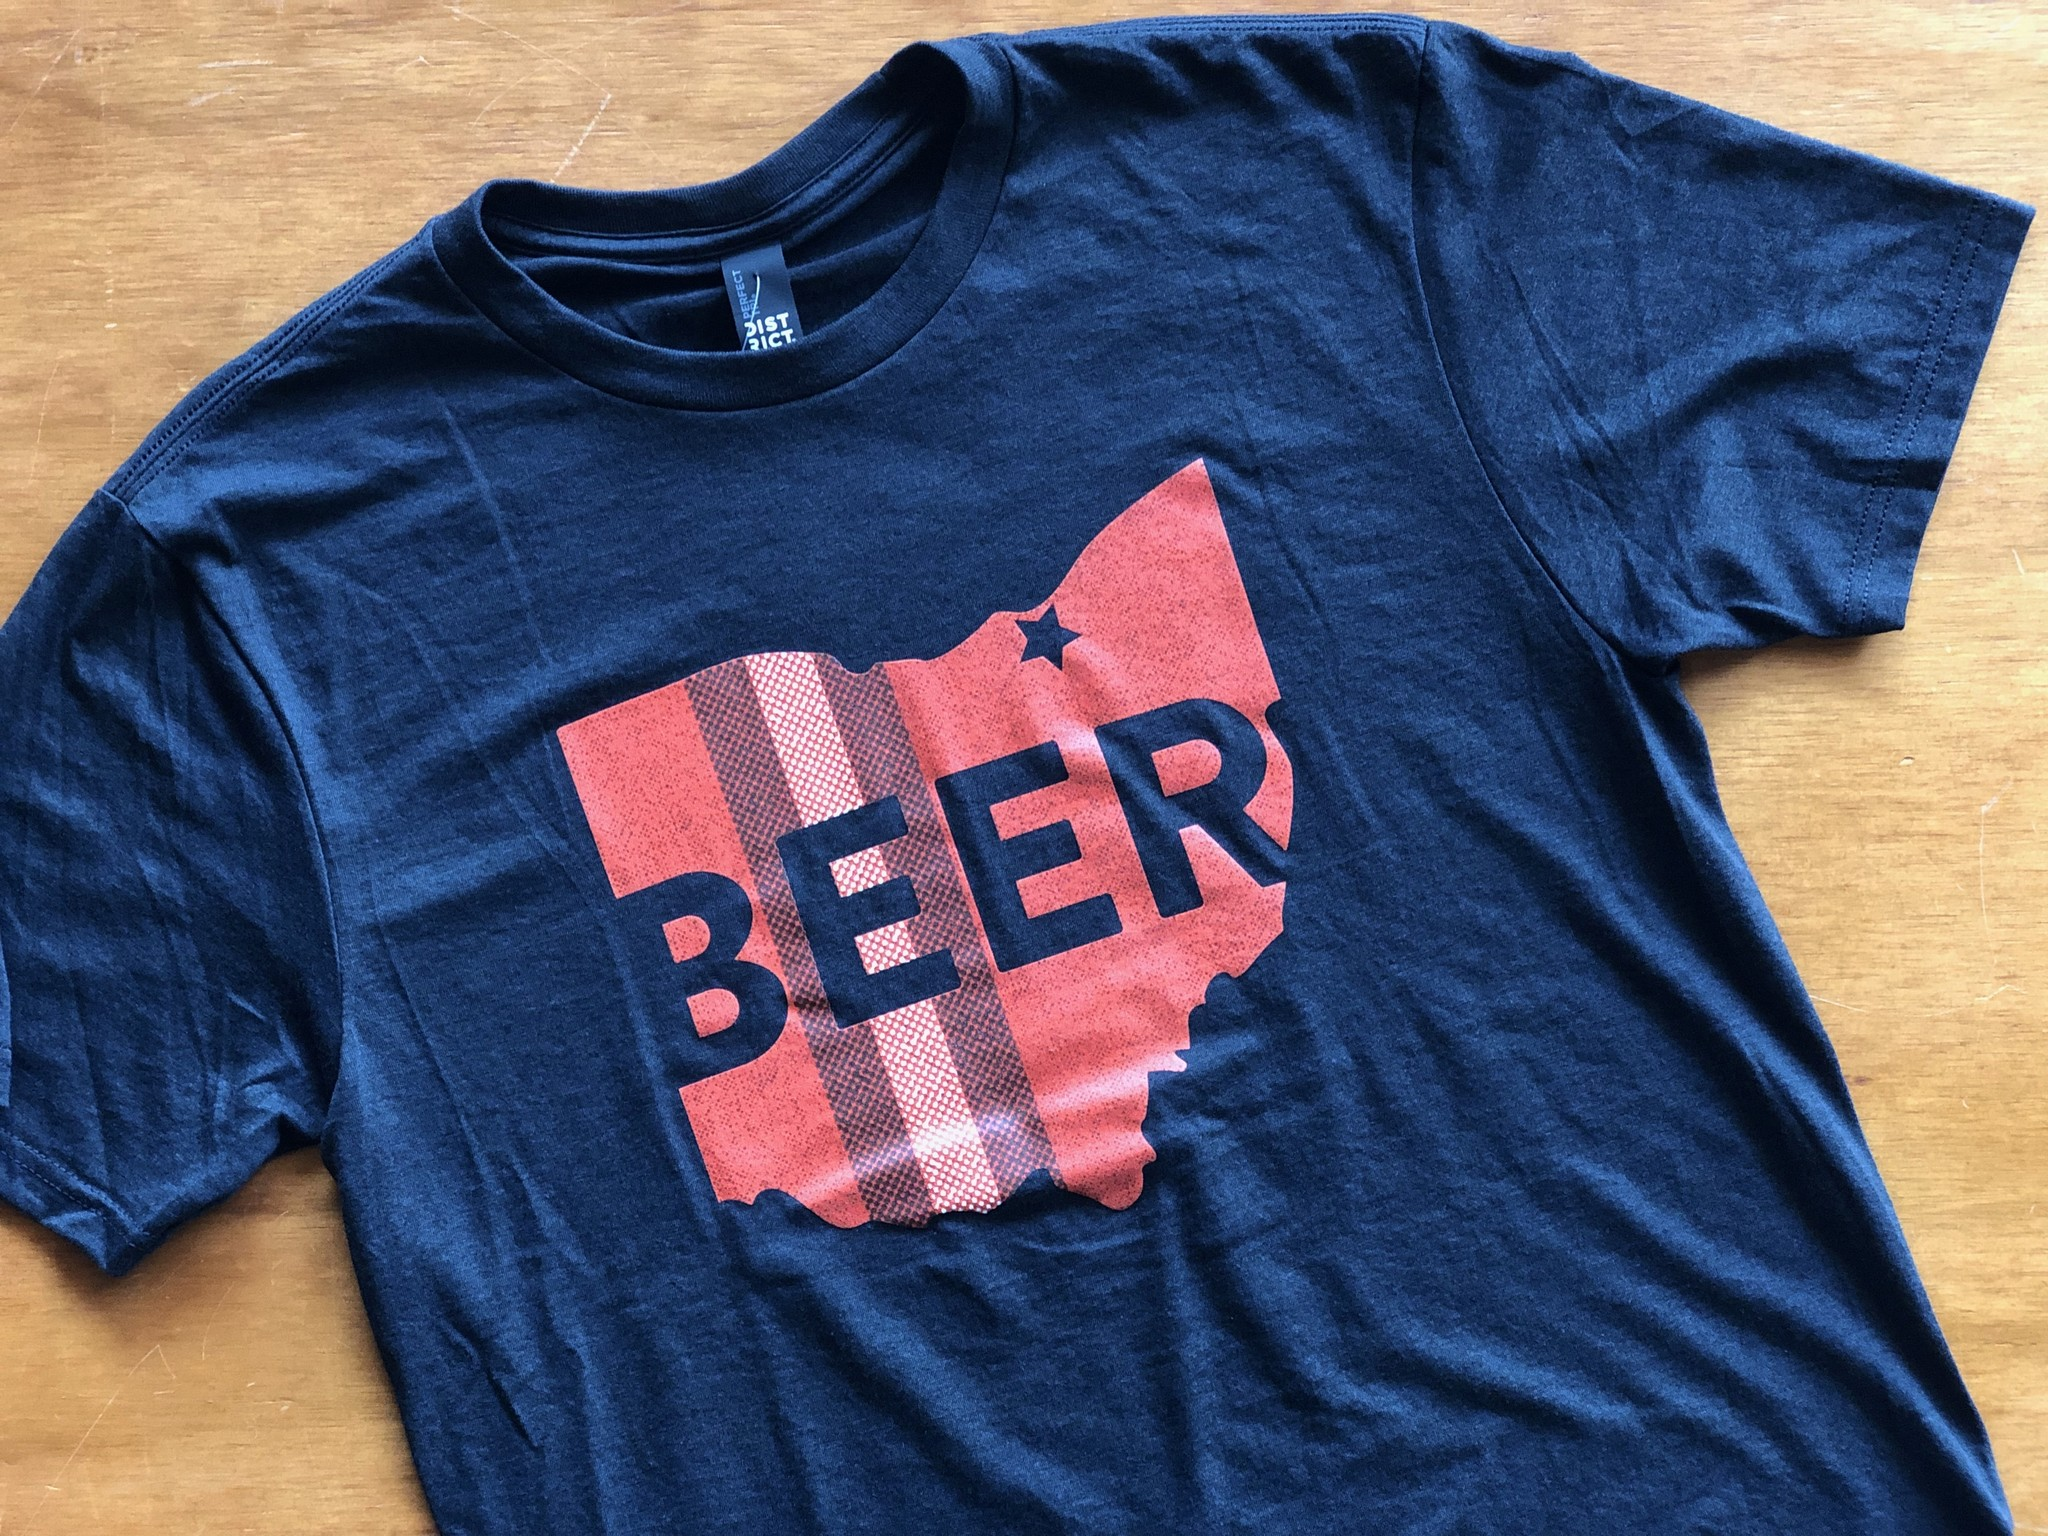 Browns Tri-Color Beerhio T-shirt